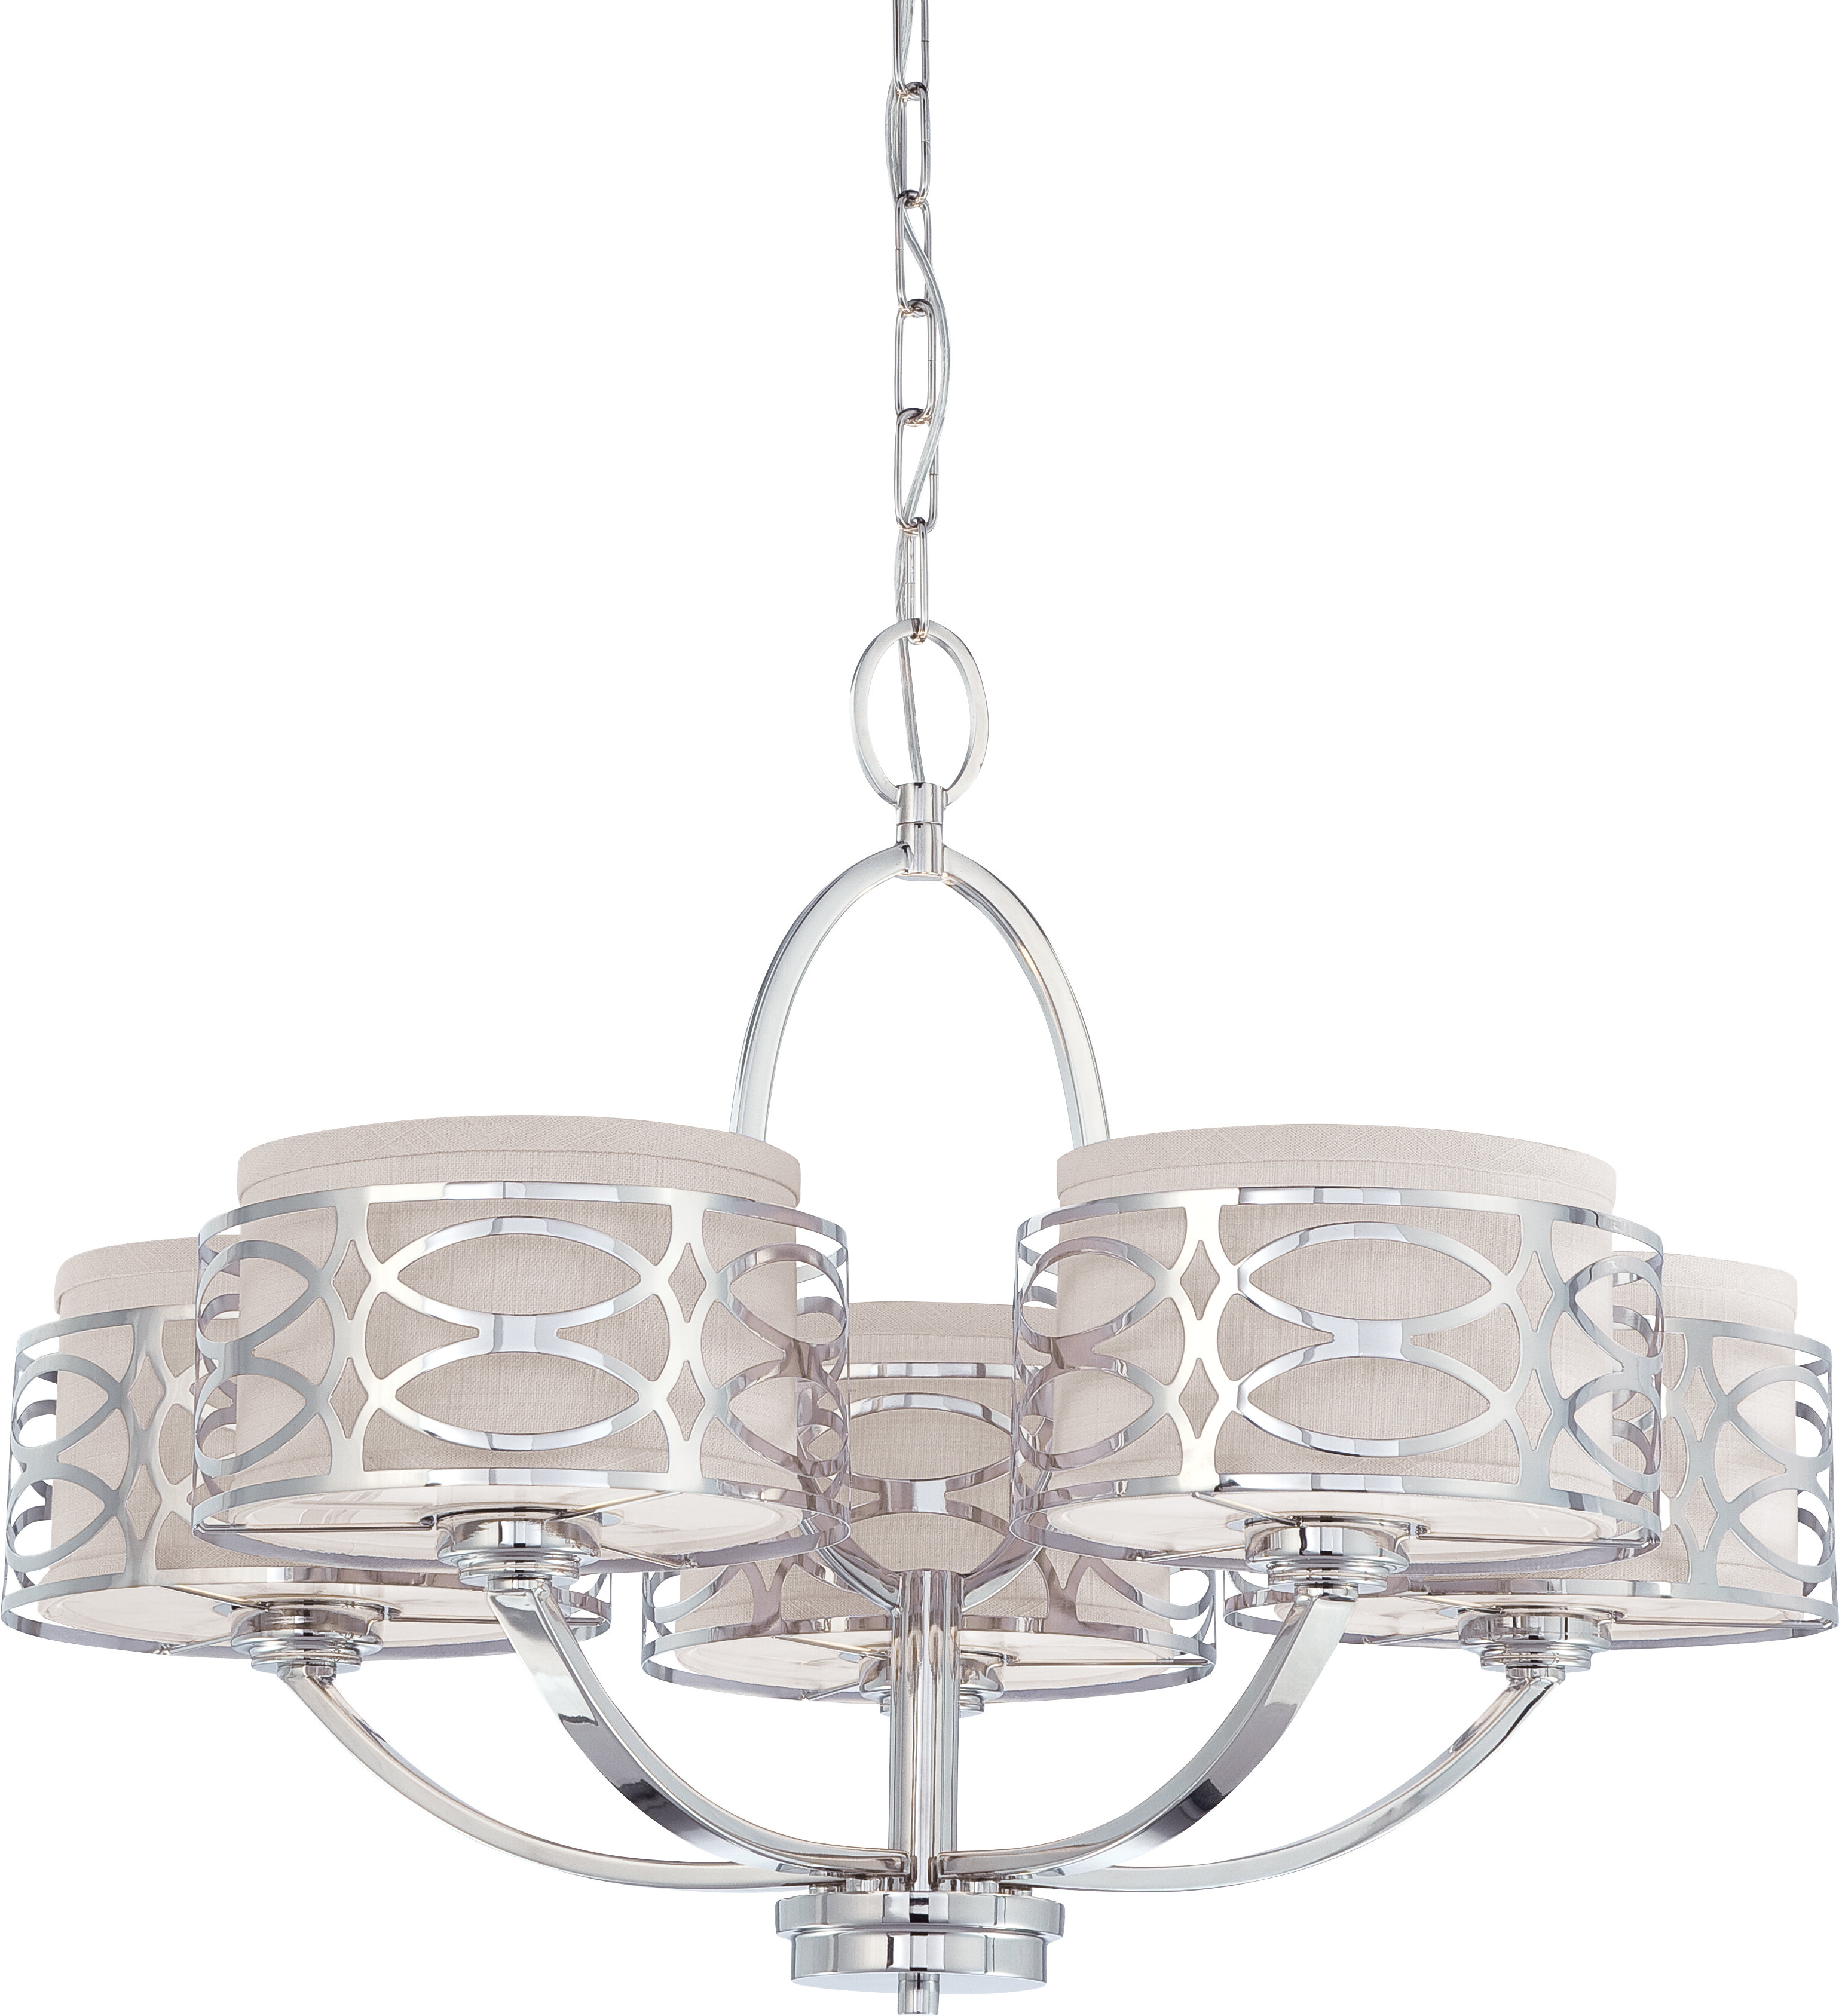 Willa Arlo Interiors Bela 5 Light Drum Chandelier Pertaining To Well Liked Abel 5 Light Drum Chandeliers (View 7 of 20)